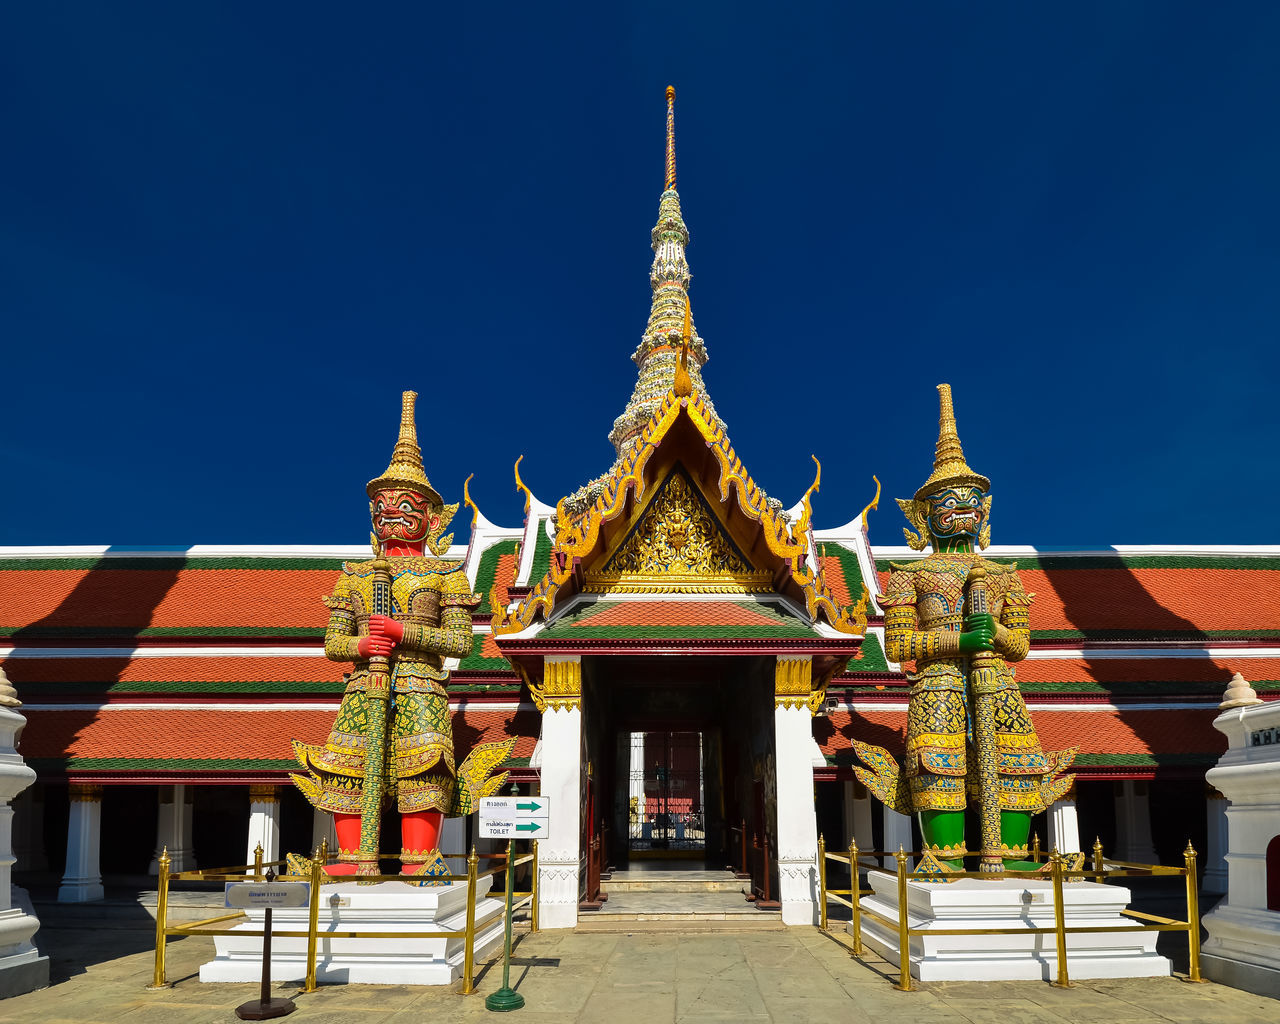 Ancient Architecture Blue Building Exterior Building Feature Built Structure Business Finance And Industry City Cultures Day Gold Gold Colored Grand Palace Bangkok Thailand History No People Outdoors Place Of Worship Religion Royalty Sky Temple Tourism Tradition Travel Travel Destinations